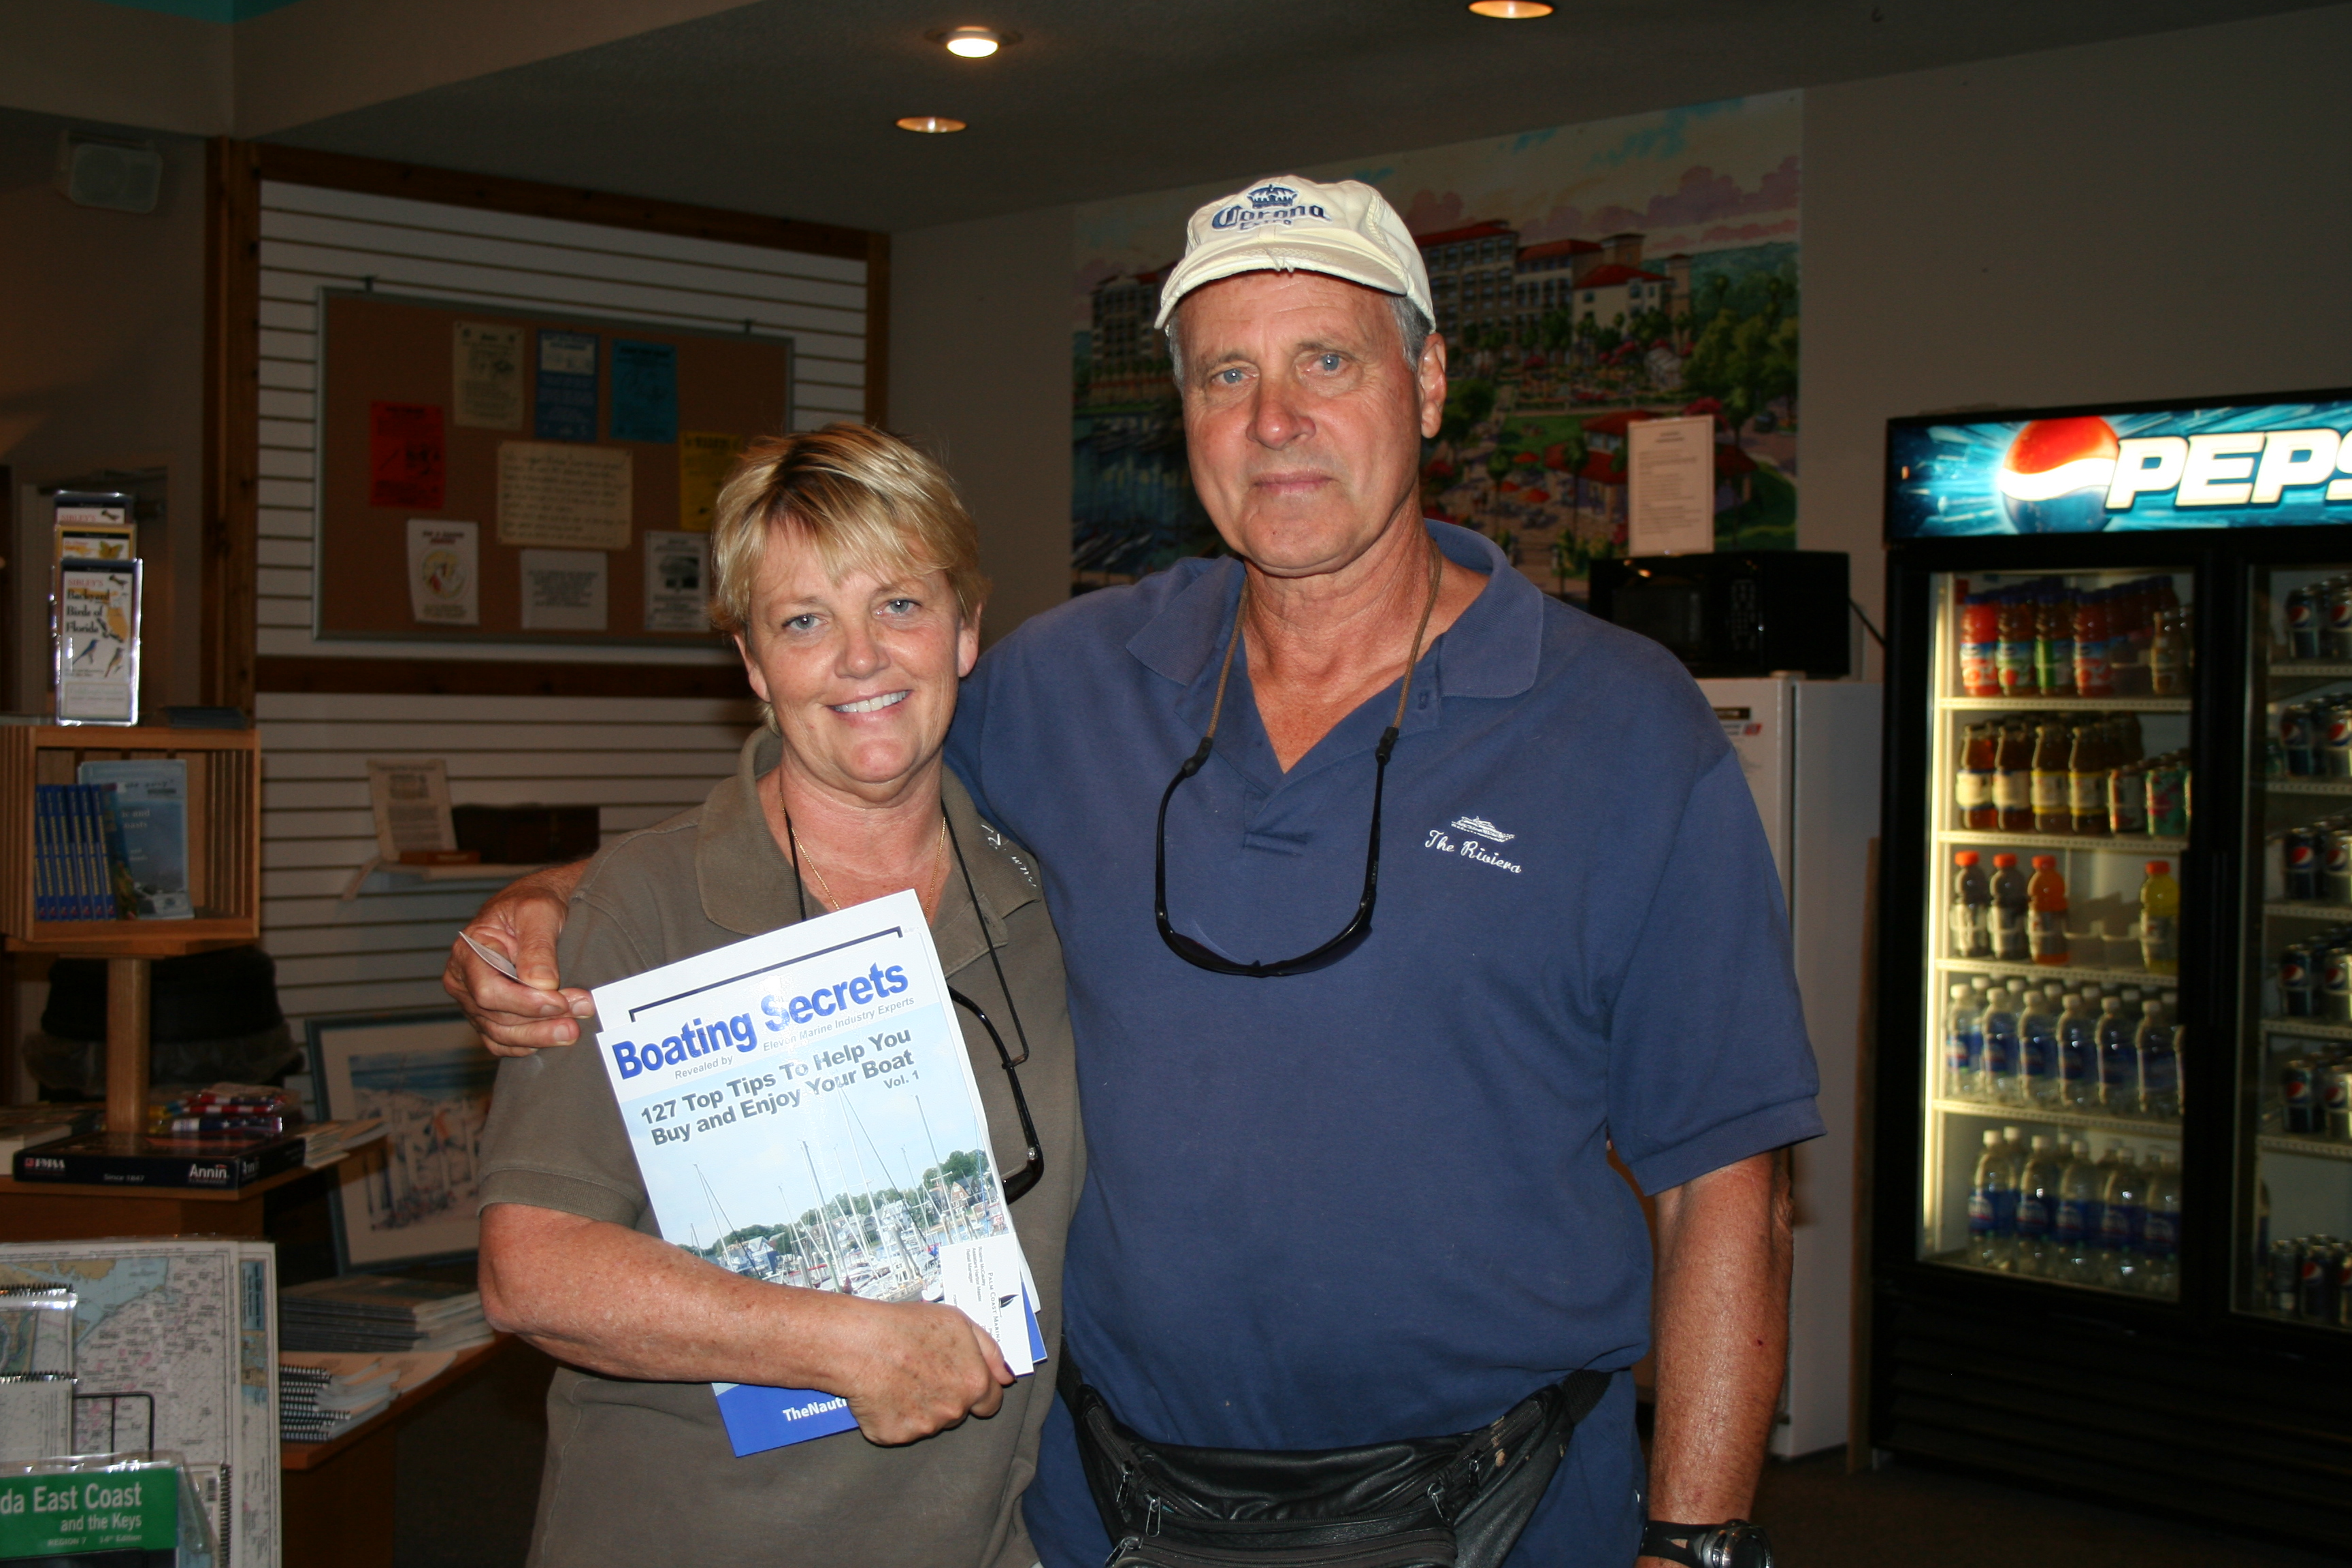 Roe McCauley of Palm Coast Marina, FL with book Boating Secrets: 127 Top Tips to Help You Buy and/or Enjoy Your Boat